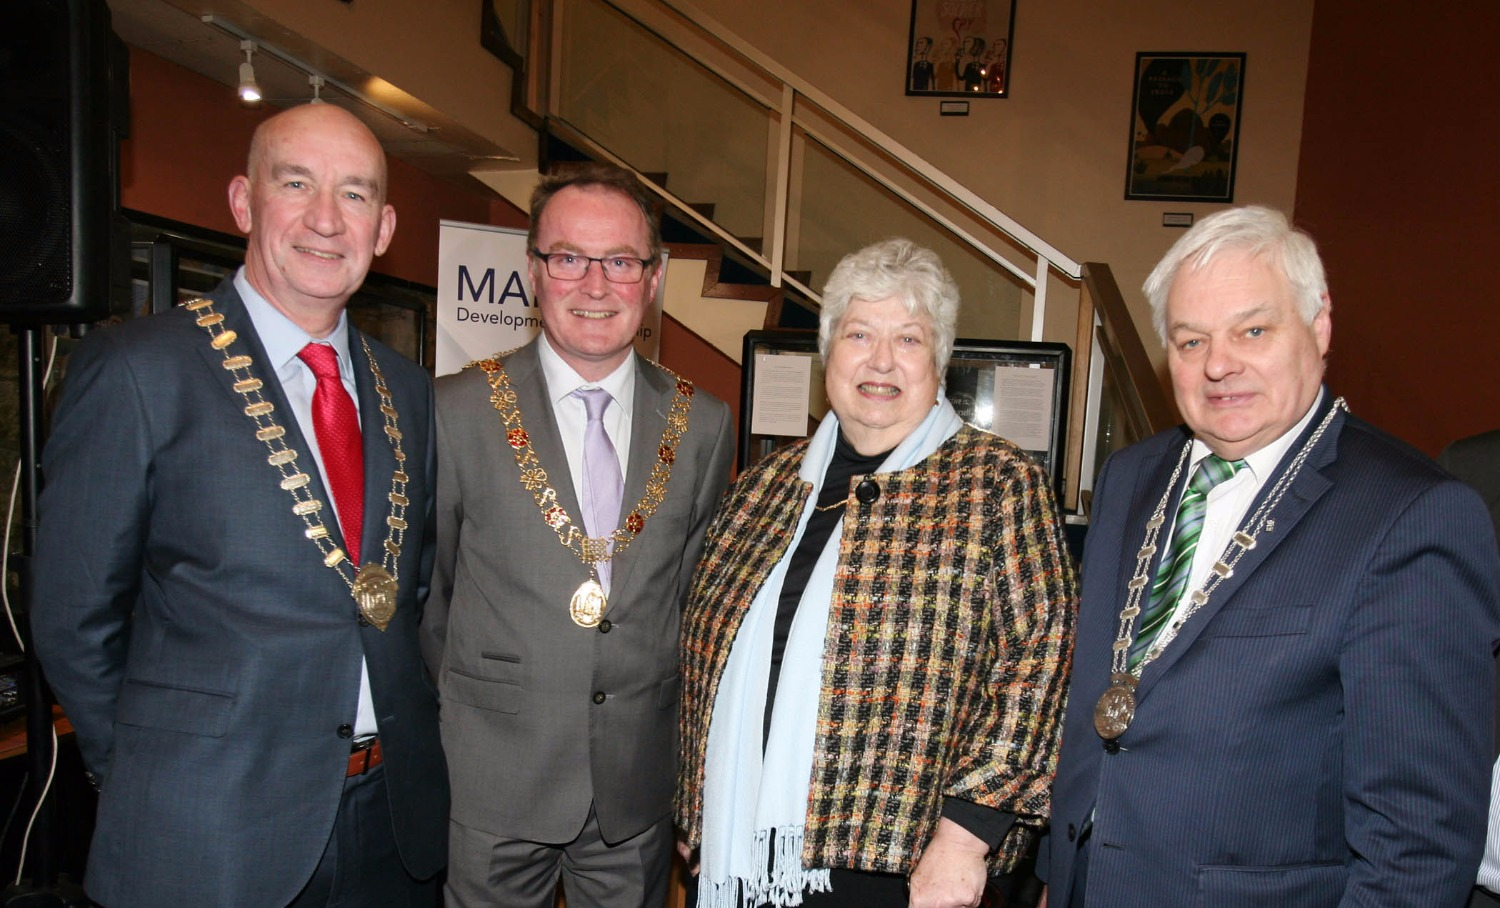 07 Pat O'Connell President of Cork Business Assoc , Mayor Des Cahill, Rosemary O'Neill, Cllr Frank O